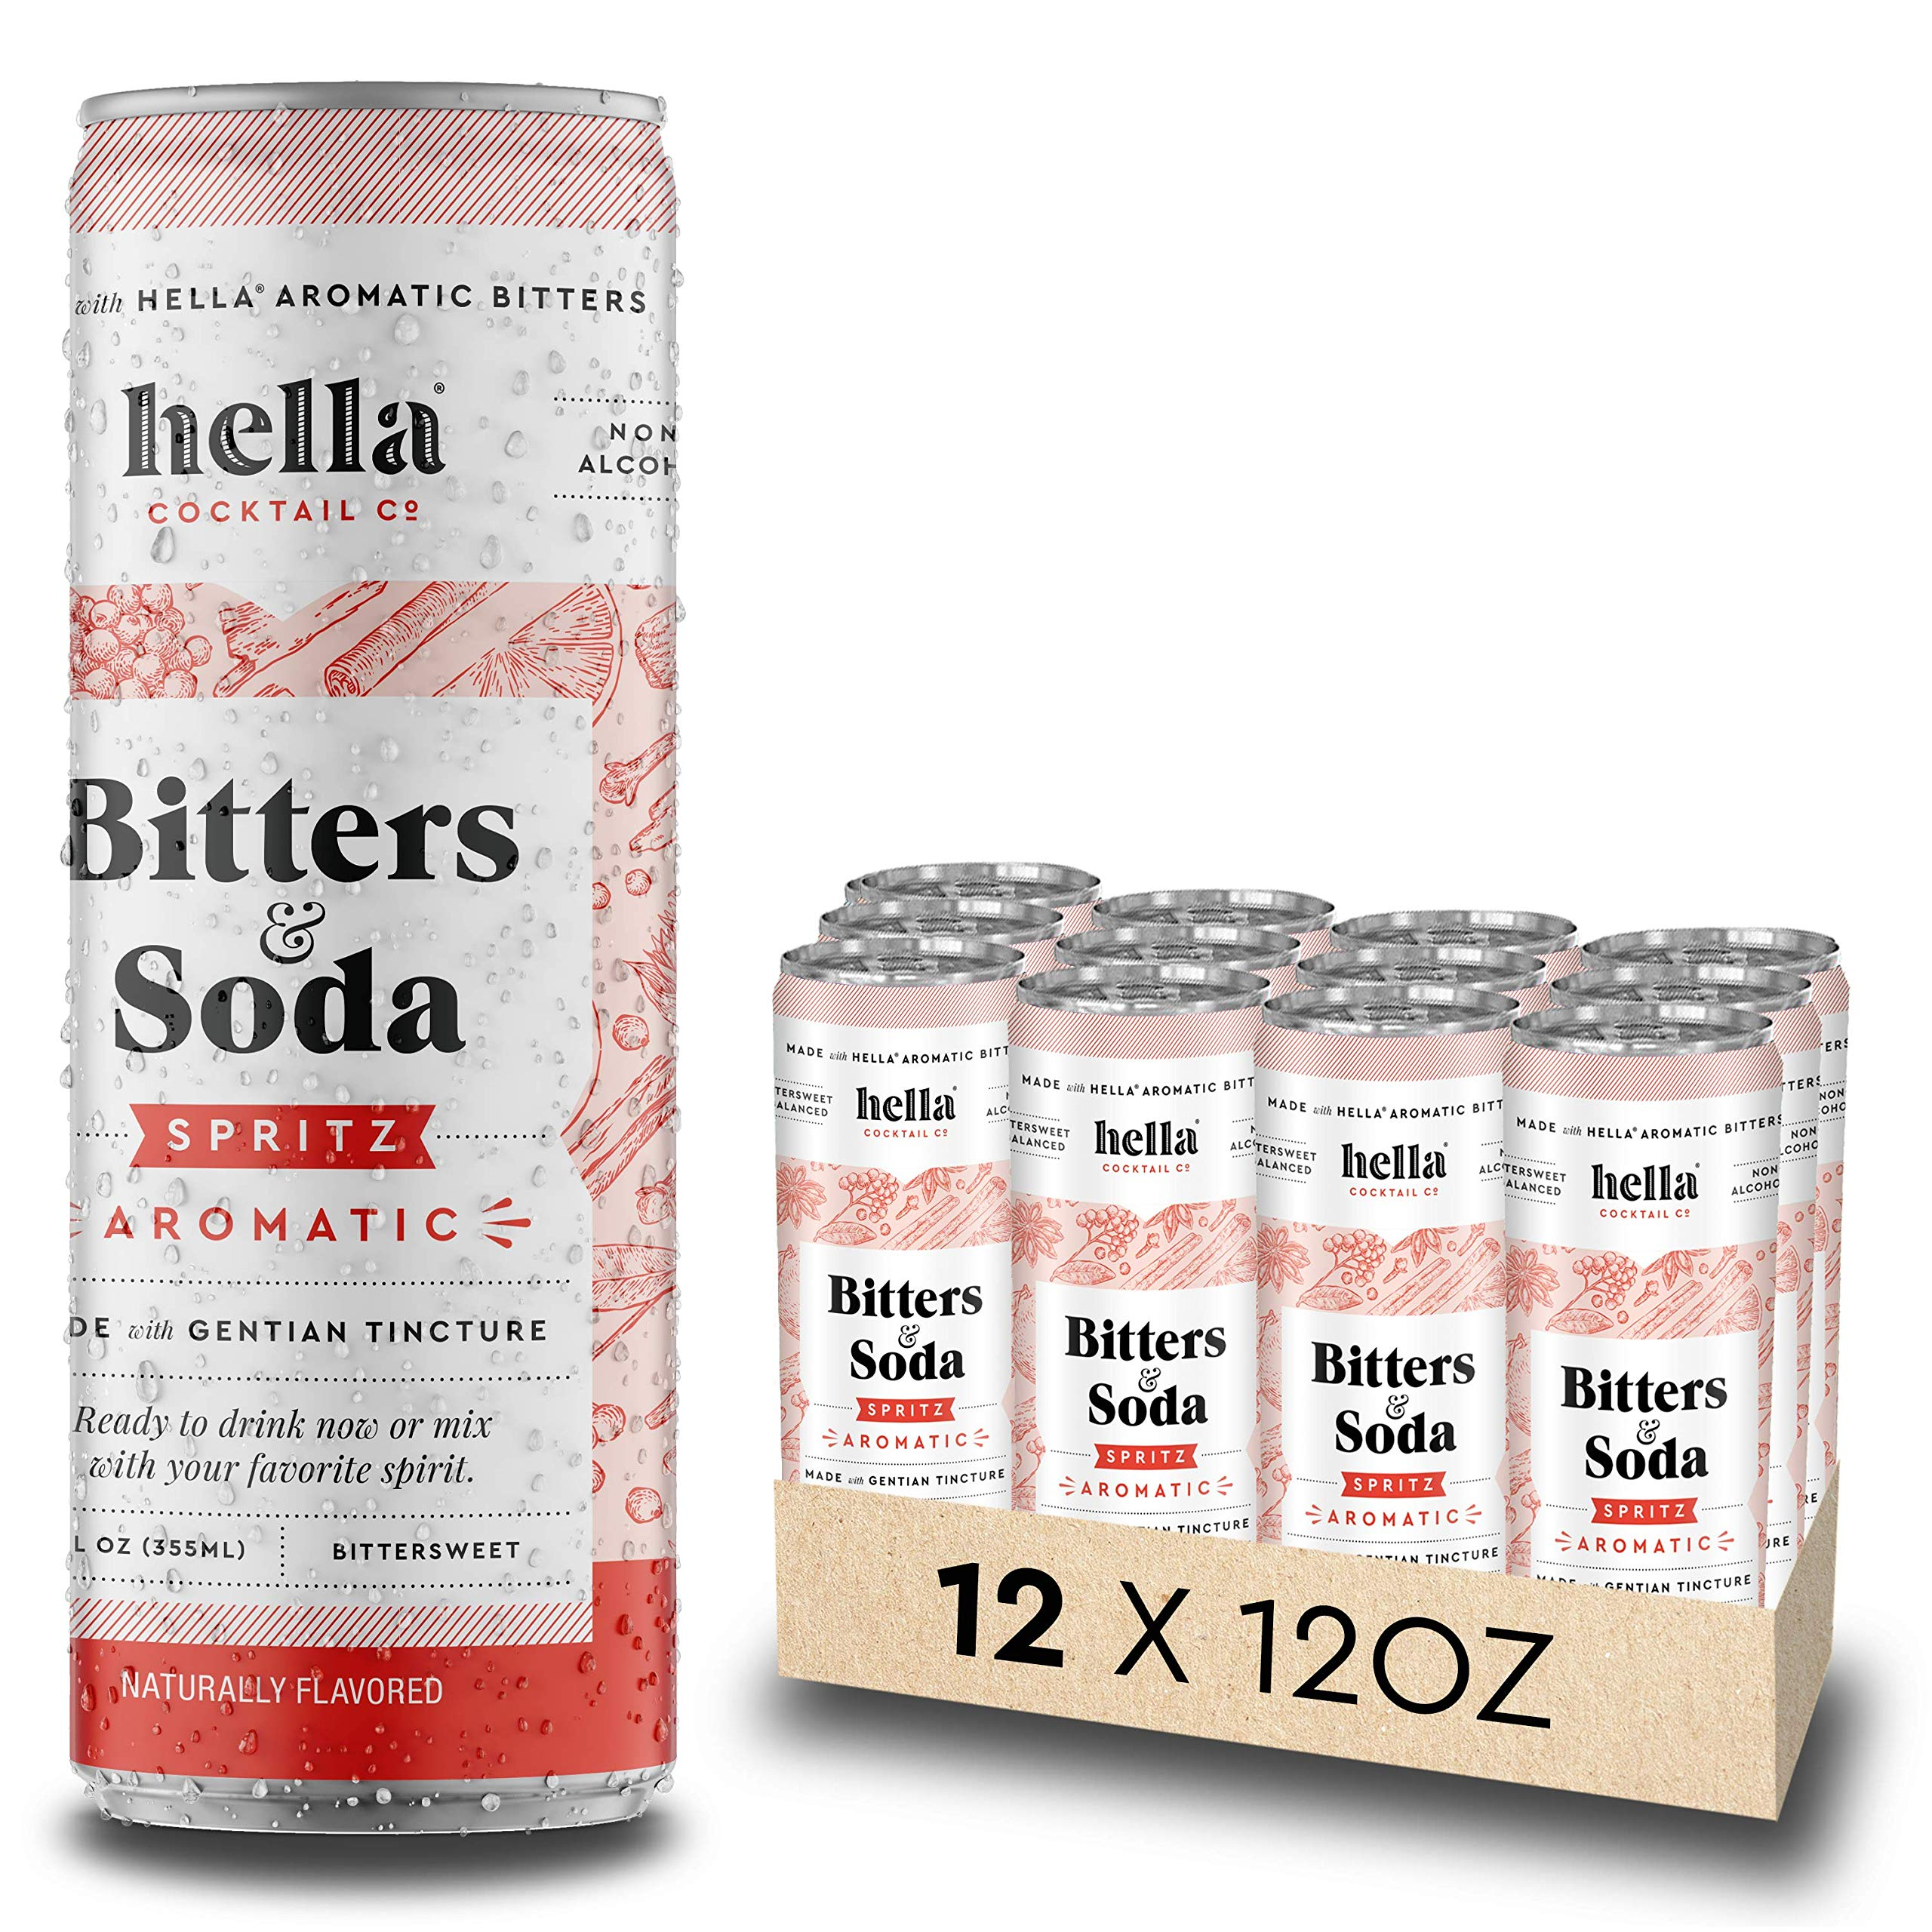 Hella Cocktail Co.   Spritz Aromatic Bitters & Soda   12oz Cans (Case of 12)   Ready to Drink or Use as Cocktail Mixer   All Natural Ingredients, Made with Gentian Tincture